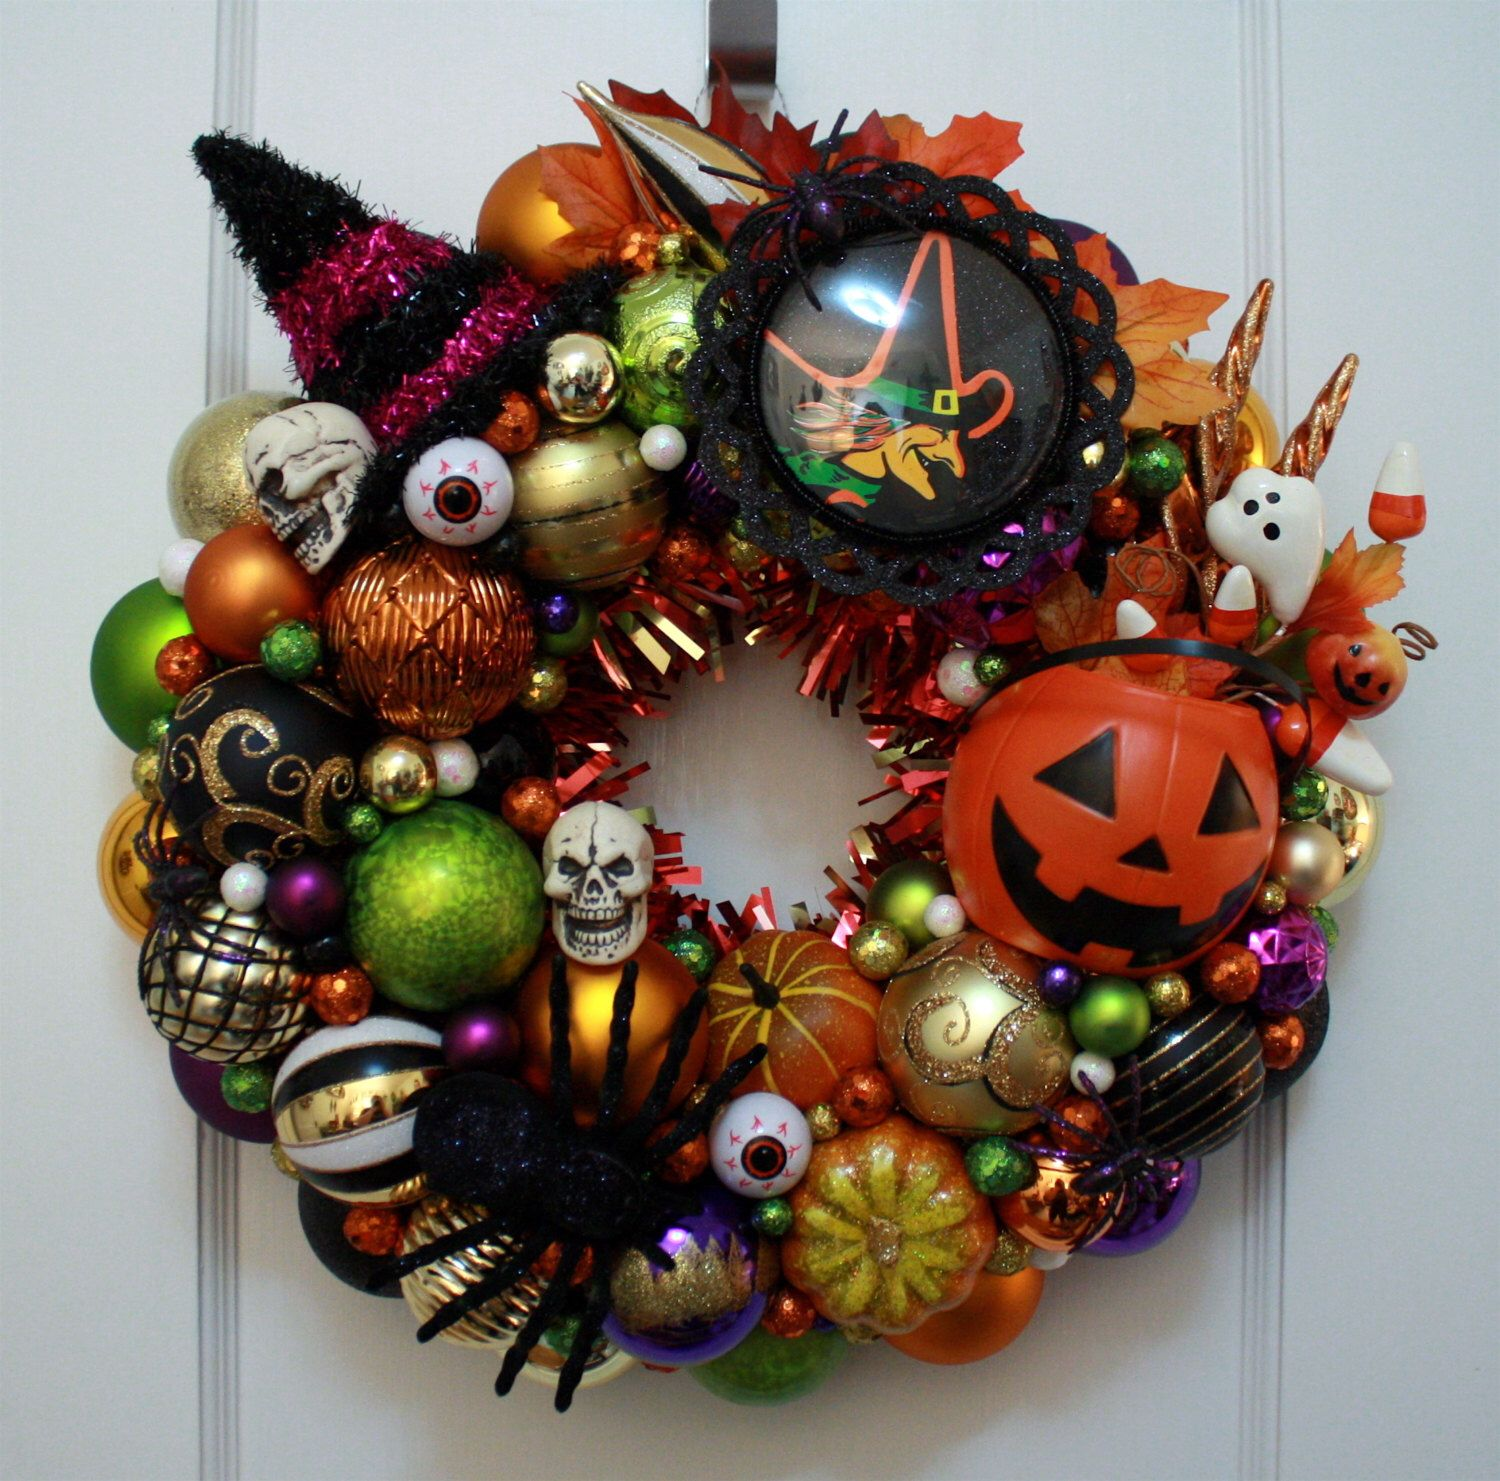 Halloween Ornament Wreath Vintage Inspired